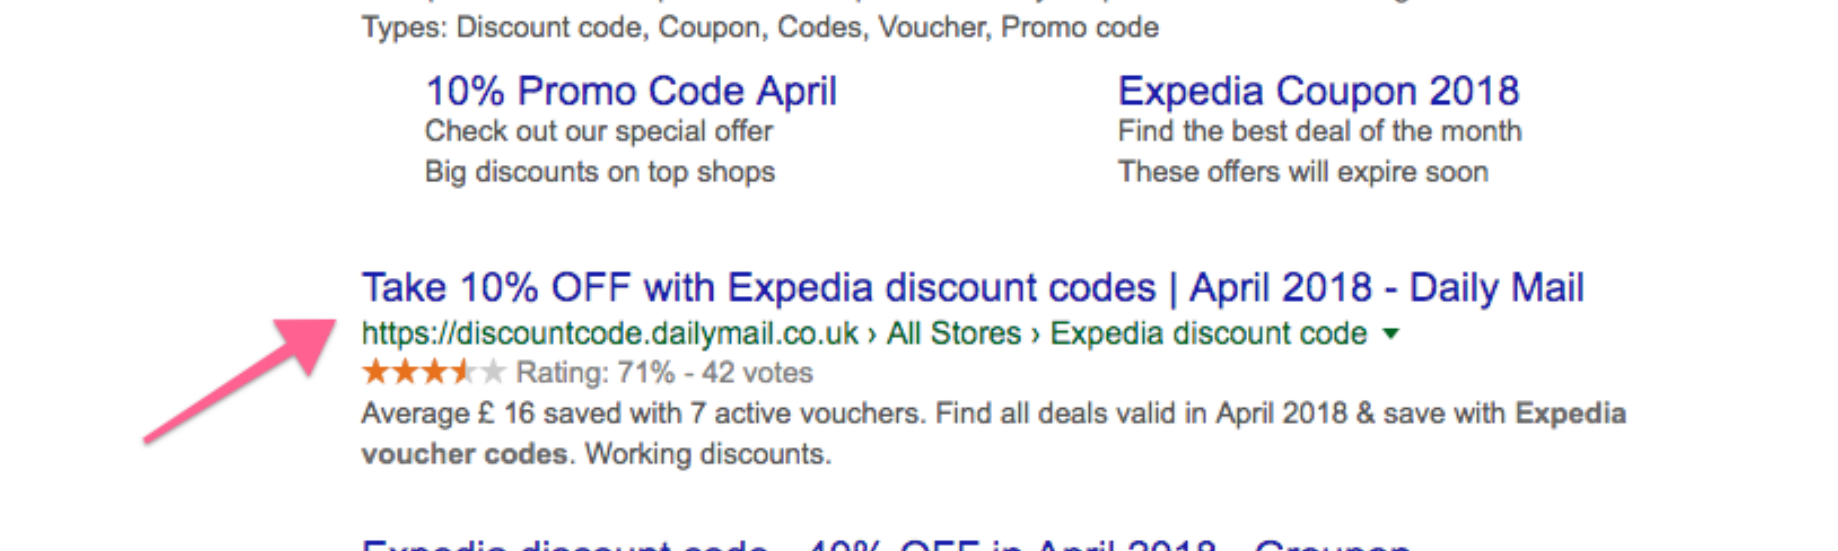 More Promotional Codes & Offers from Similar Stores